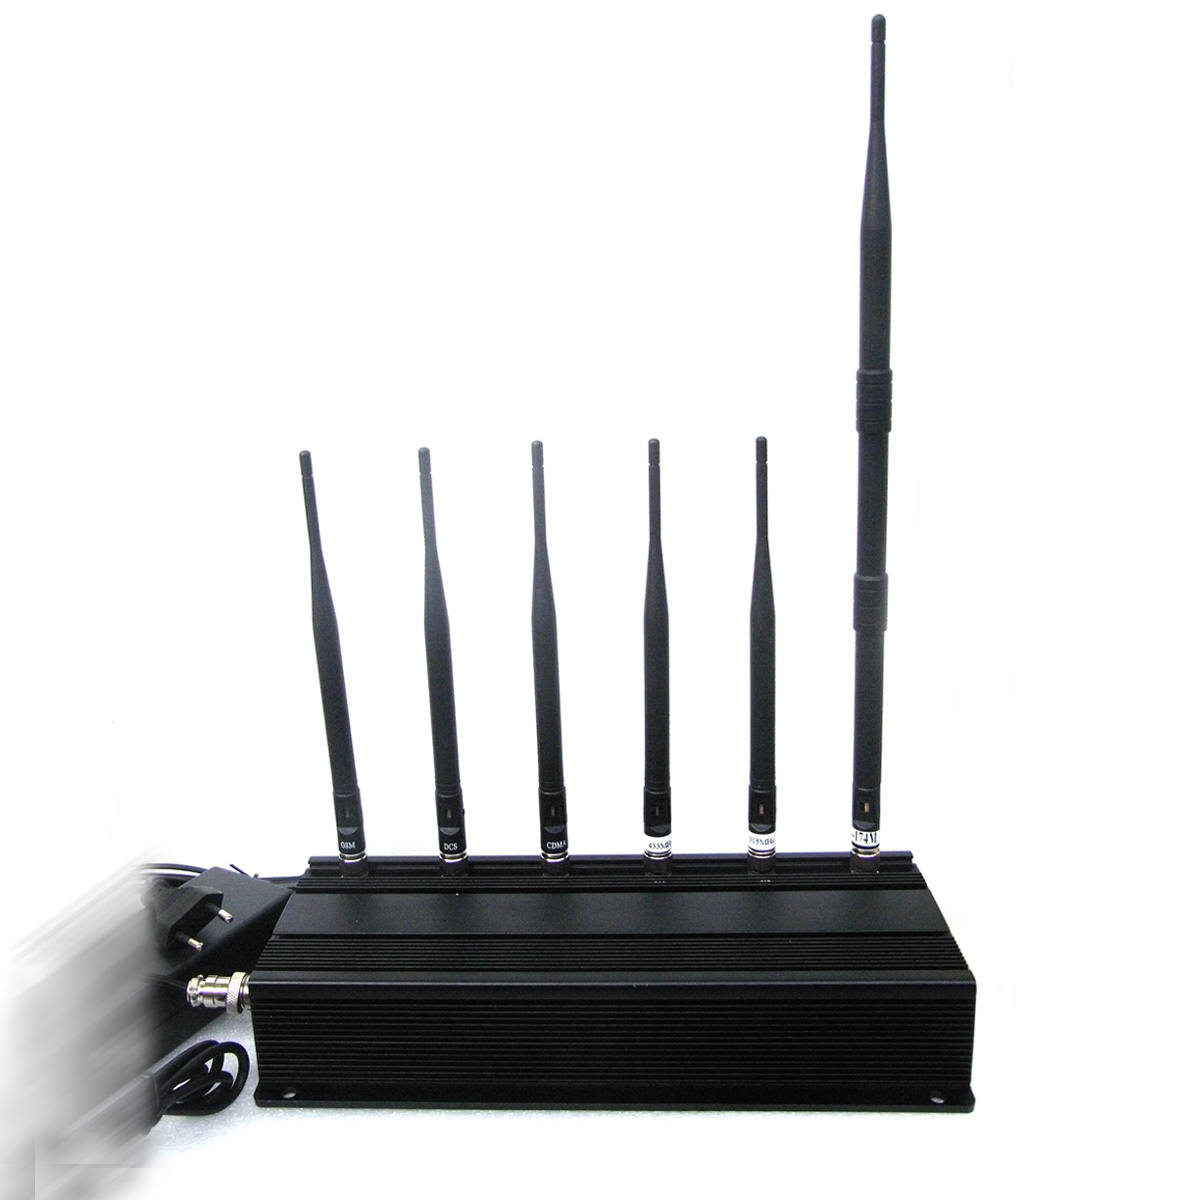 Cell phone jammer device - cell phone jammer Big Pine